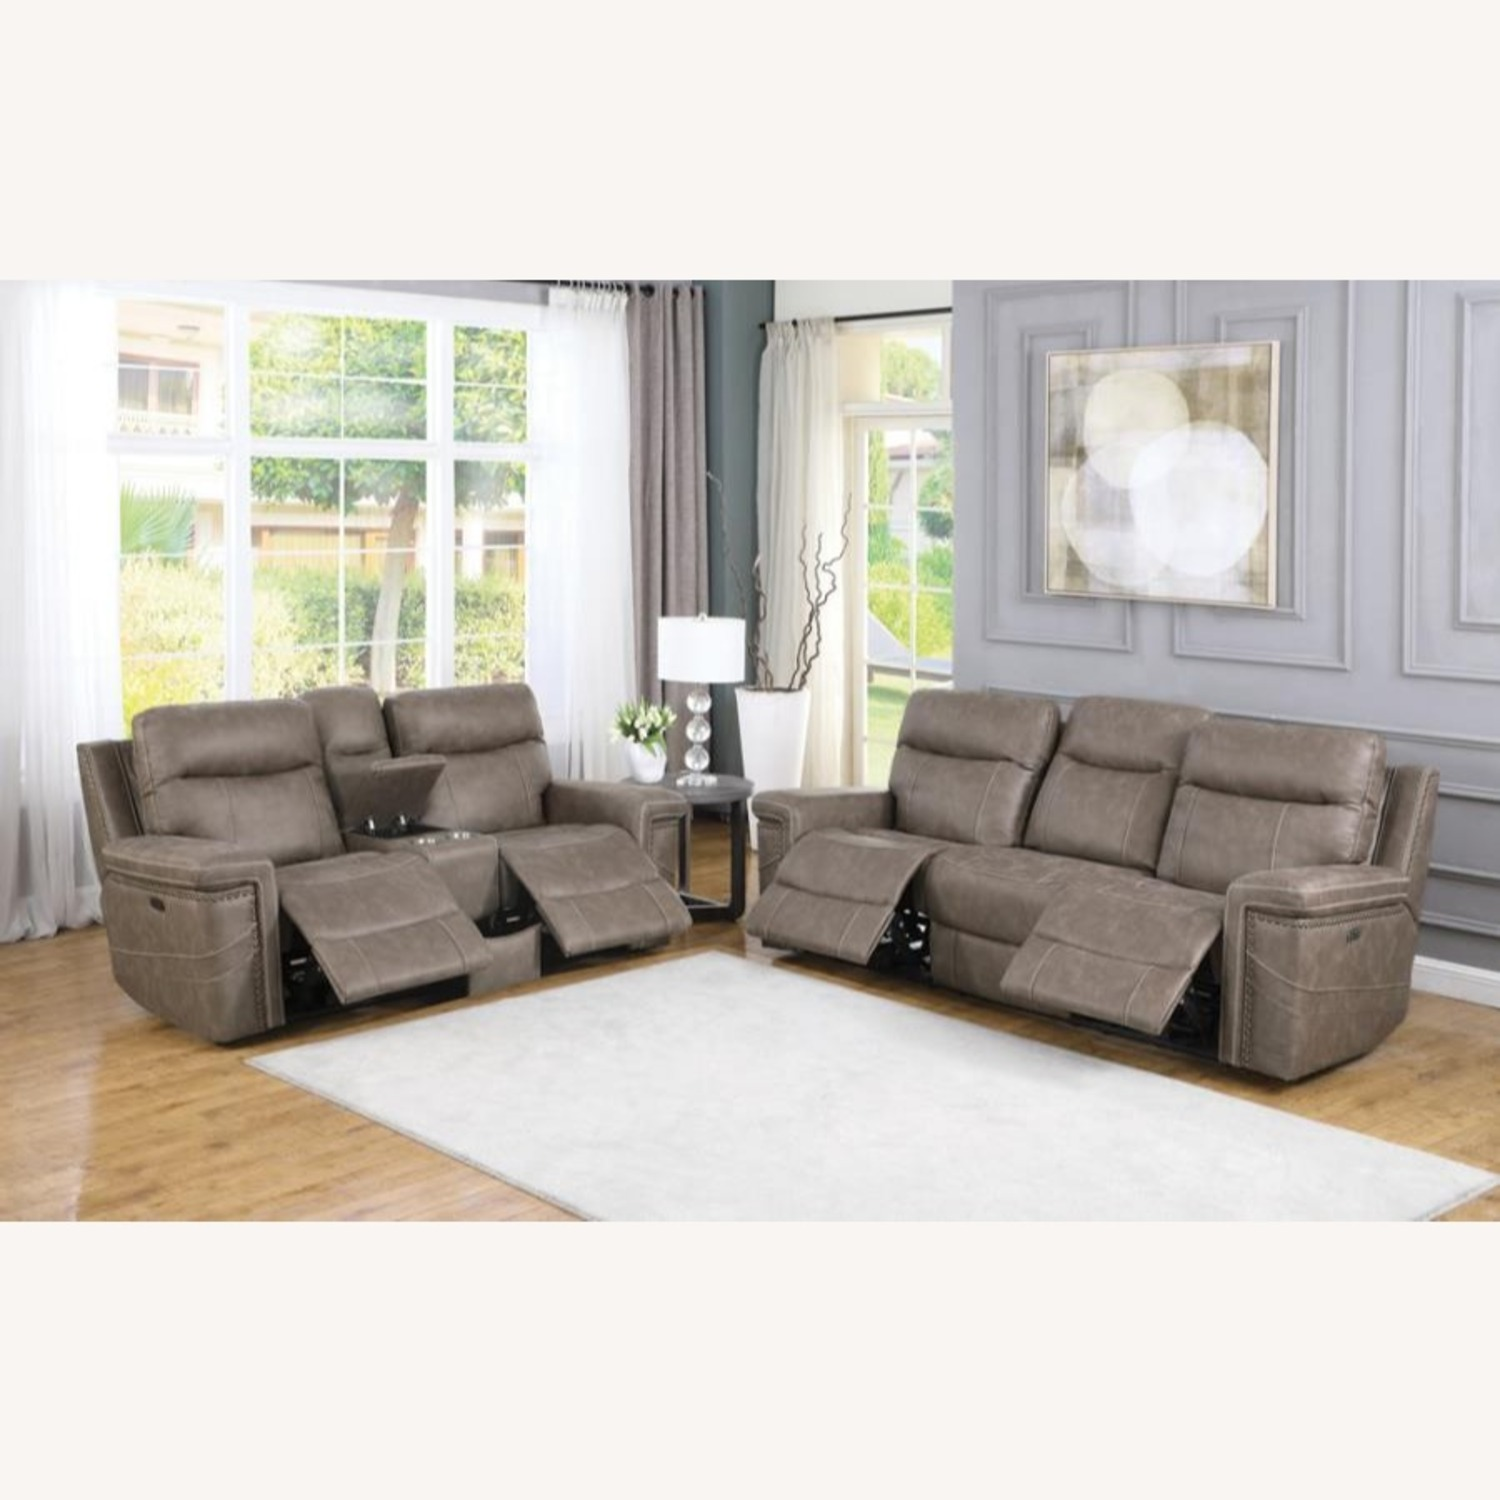 Power Loveseat Recliner In Taupe Upholstery - image-17